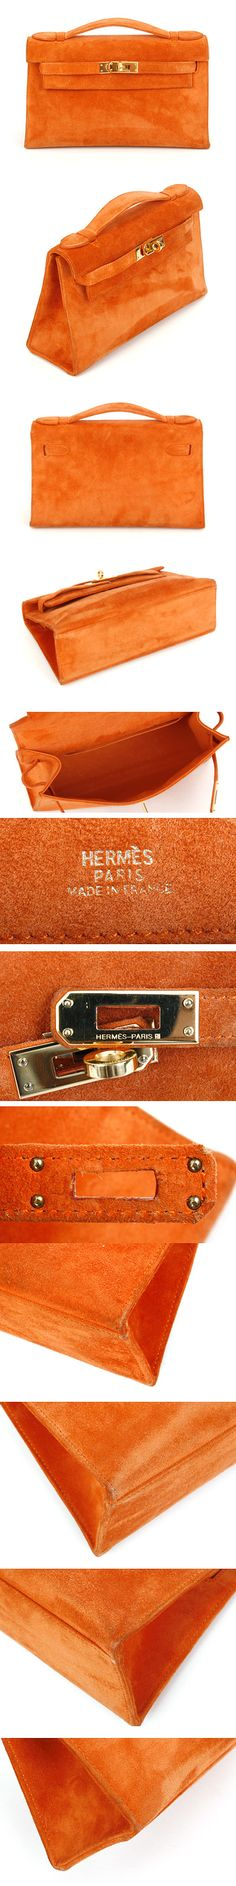 ~Hermes Mini Pouchette Orange | The House of Beccaria#